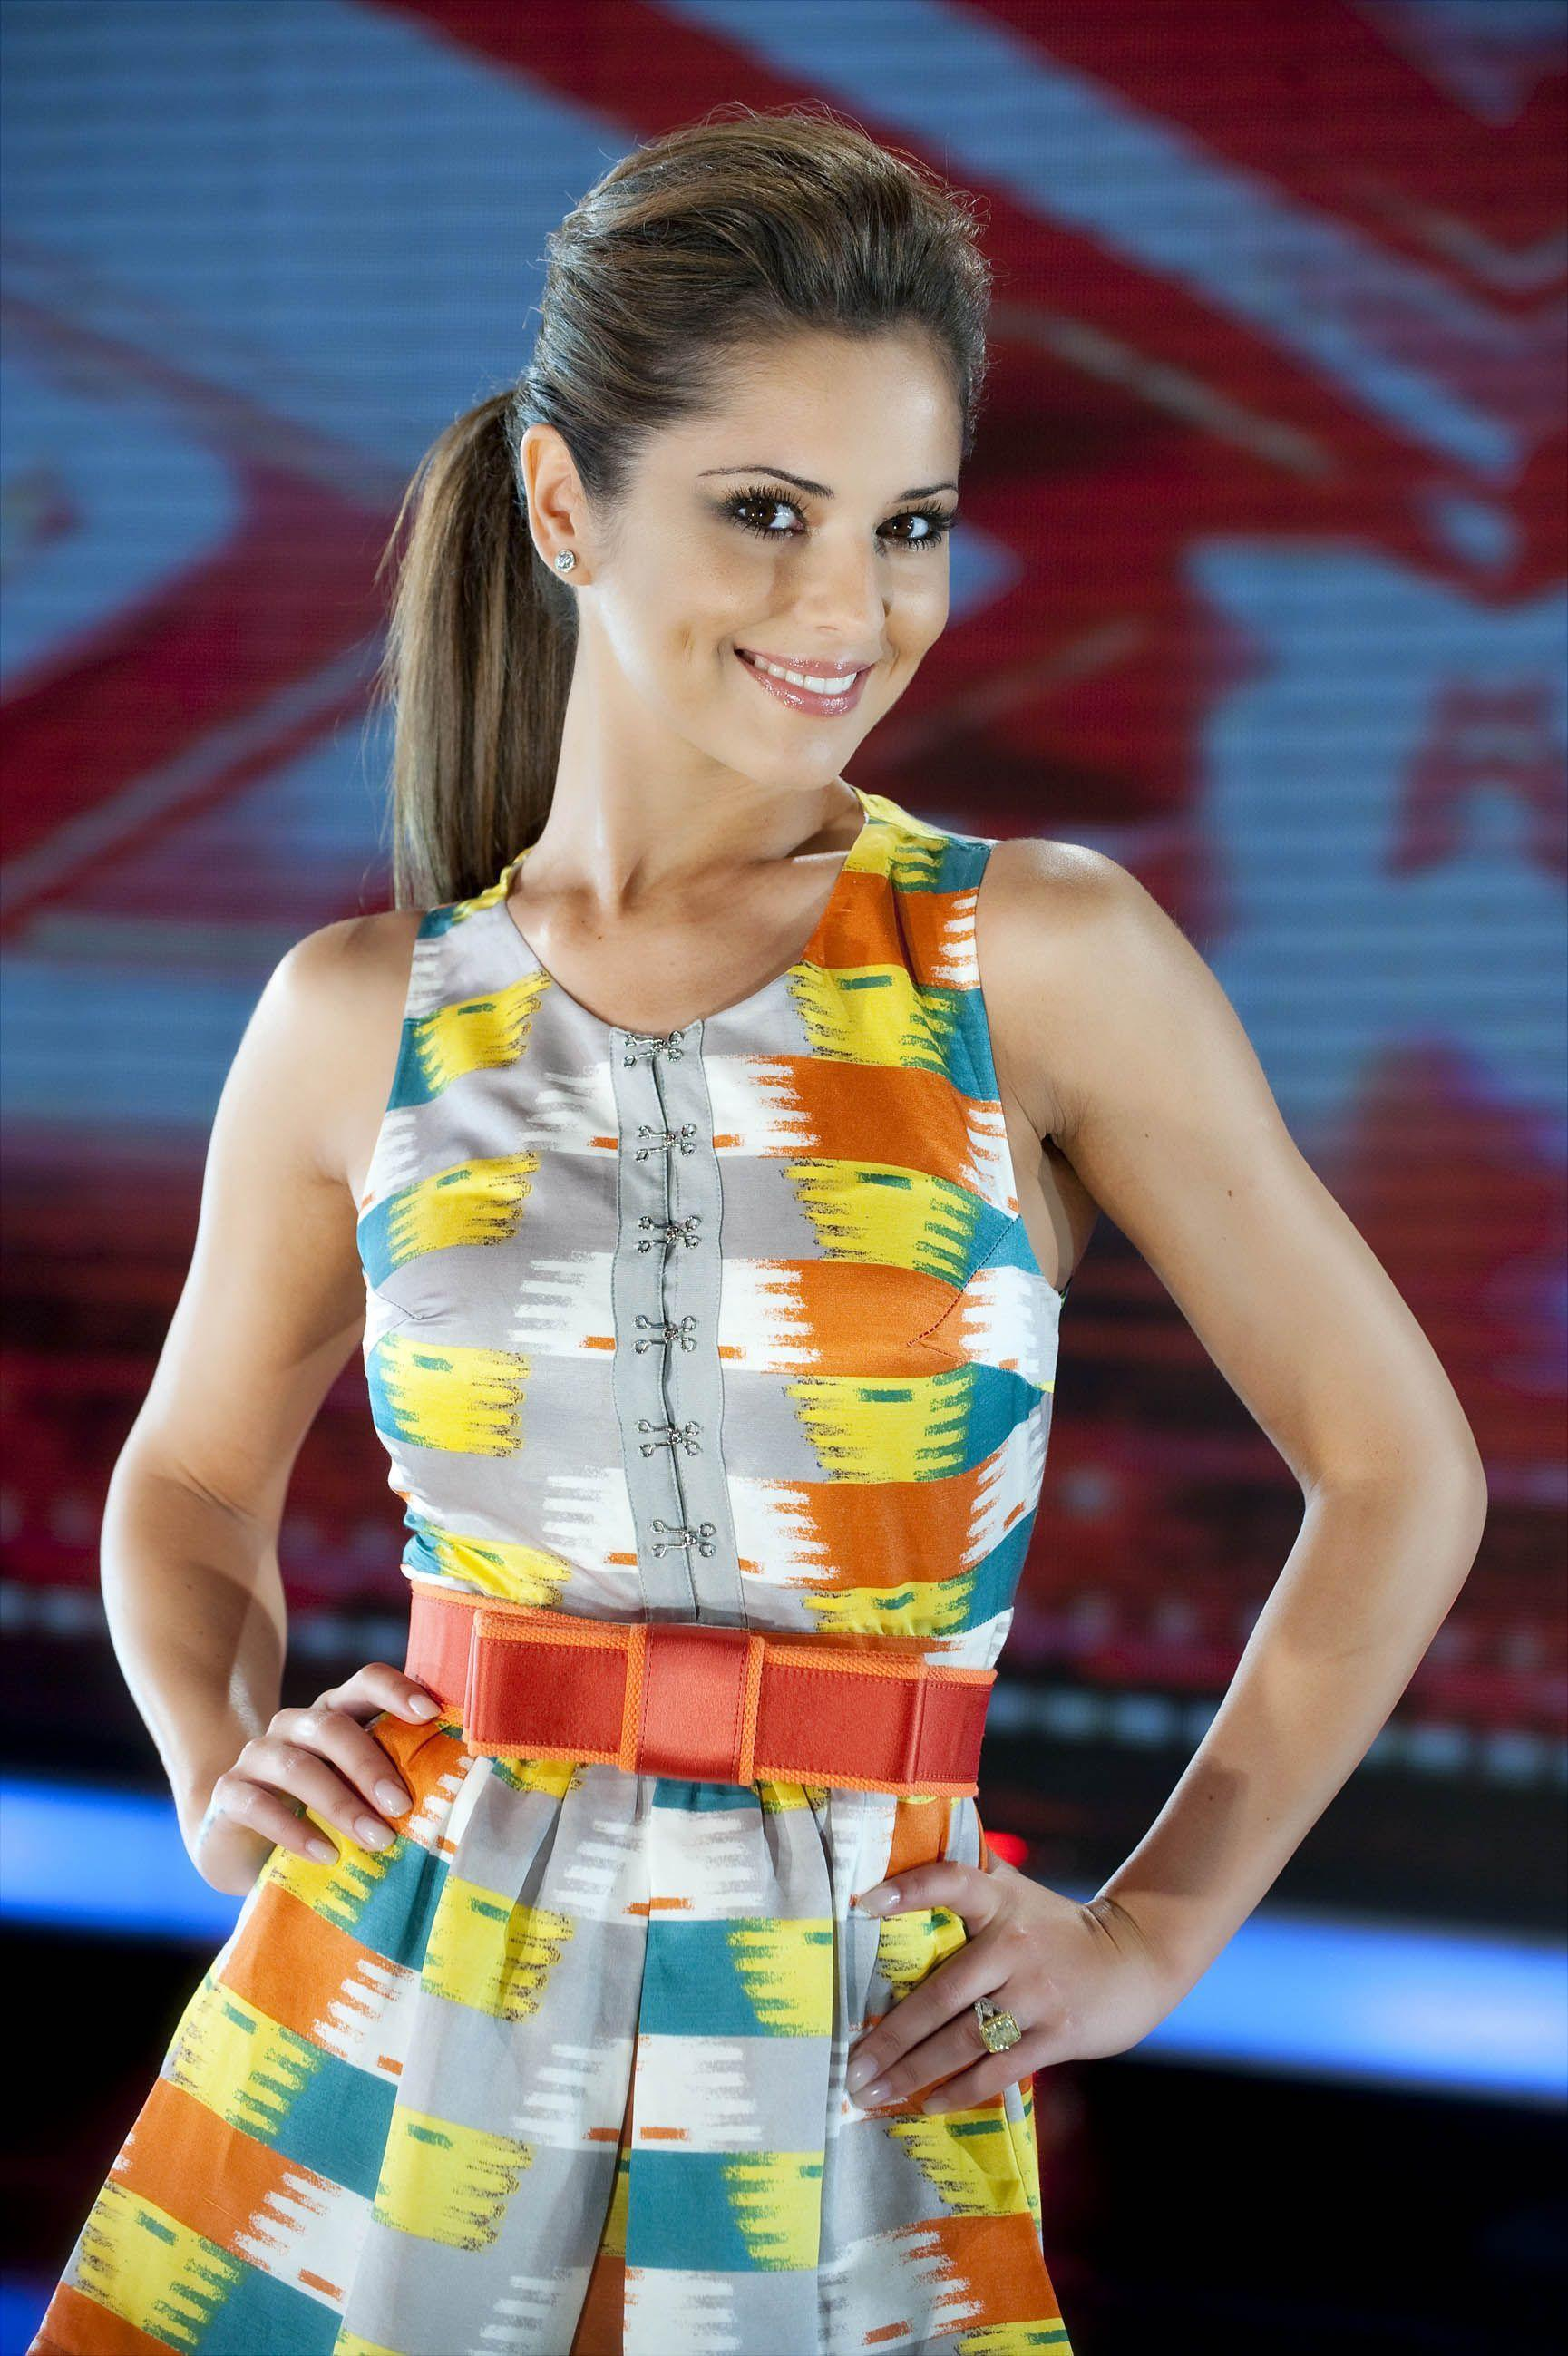 Cheryl Cole Wallpapers...